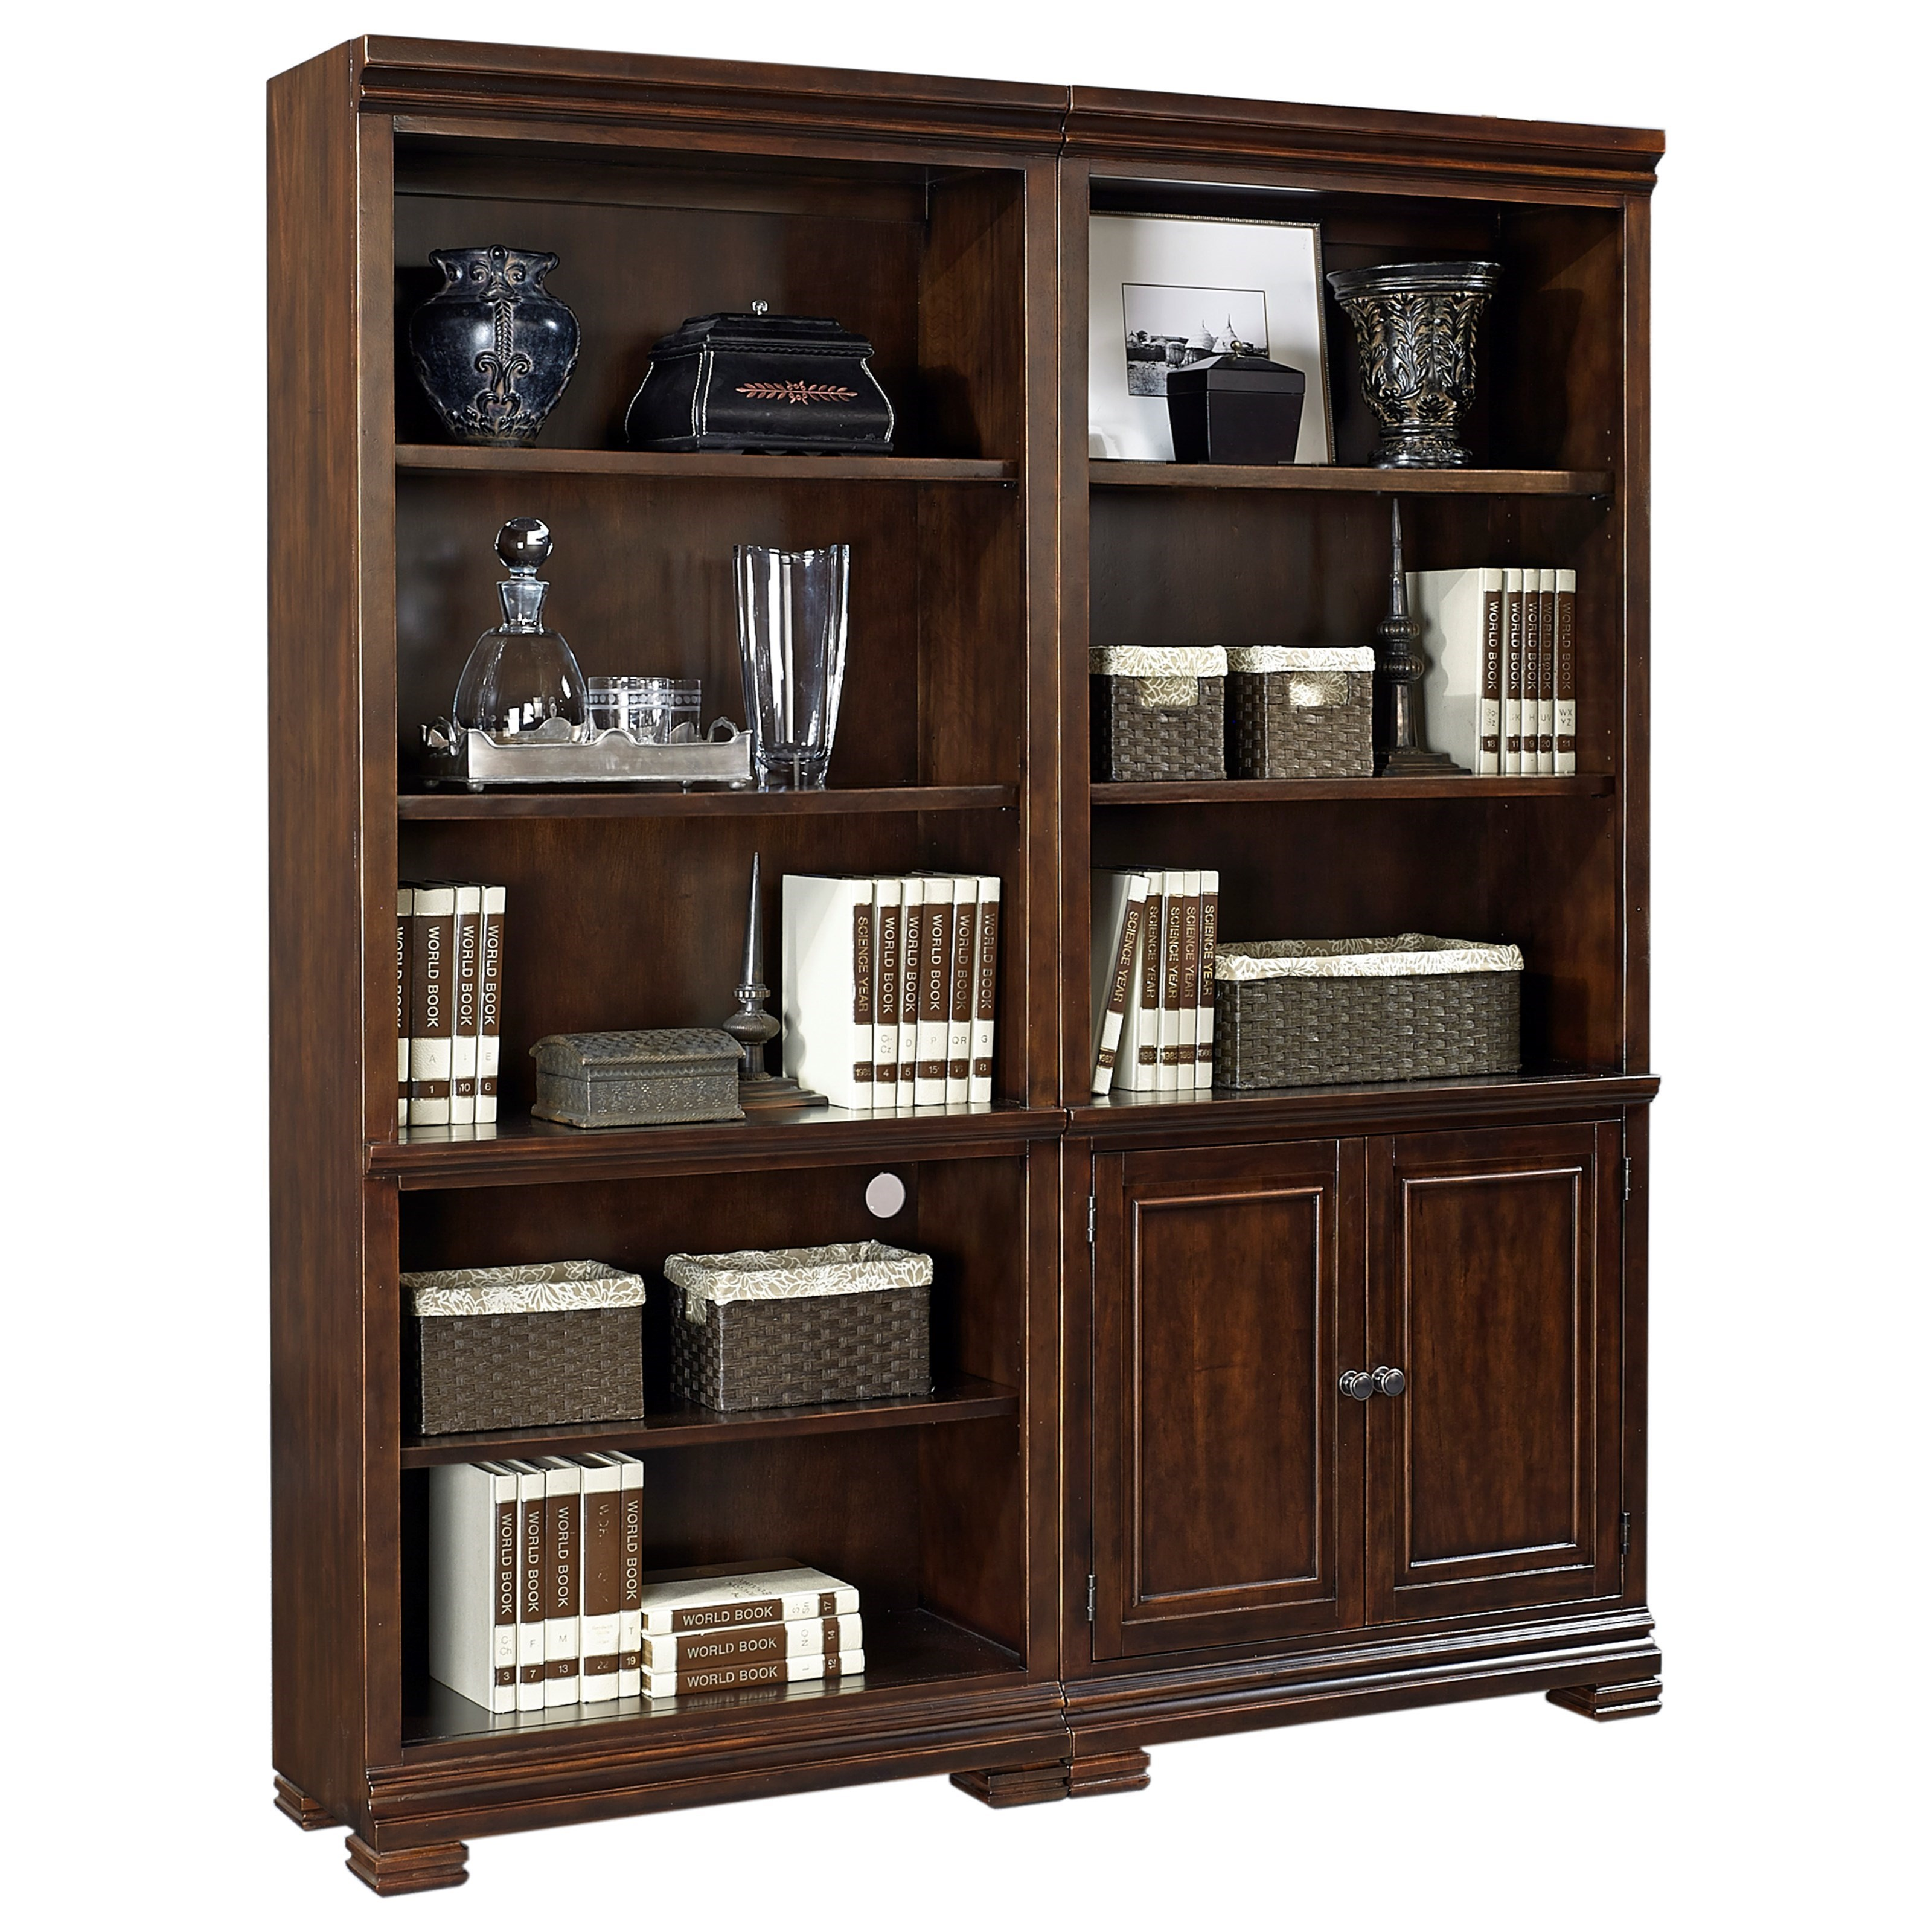 Weston Bookcase Wall by Aspenhome at Walker's Furniture